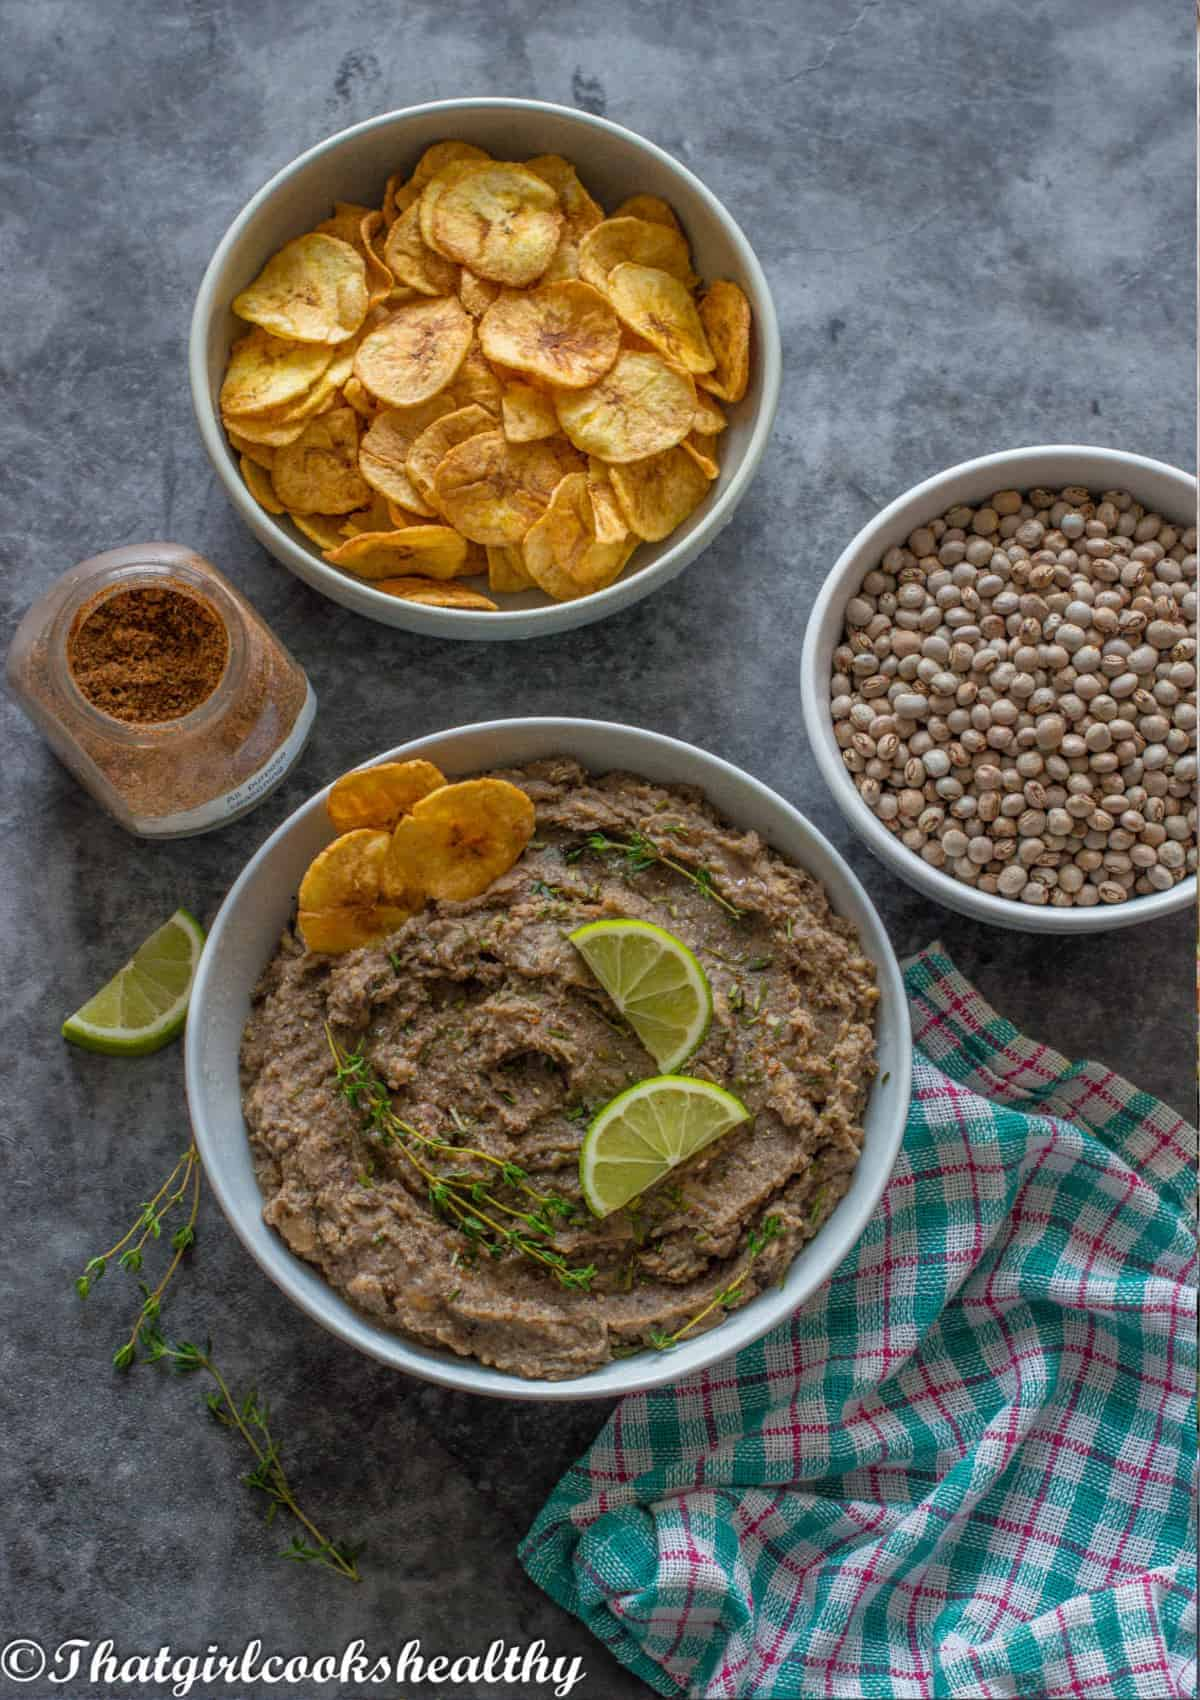 Refried beans, plantain chips and gungo peas all together